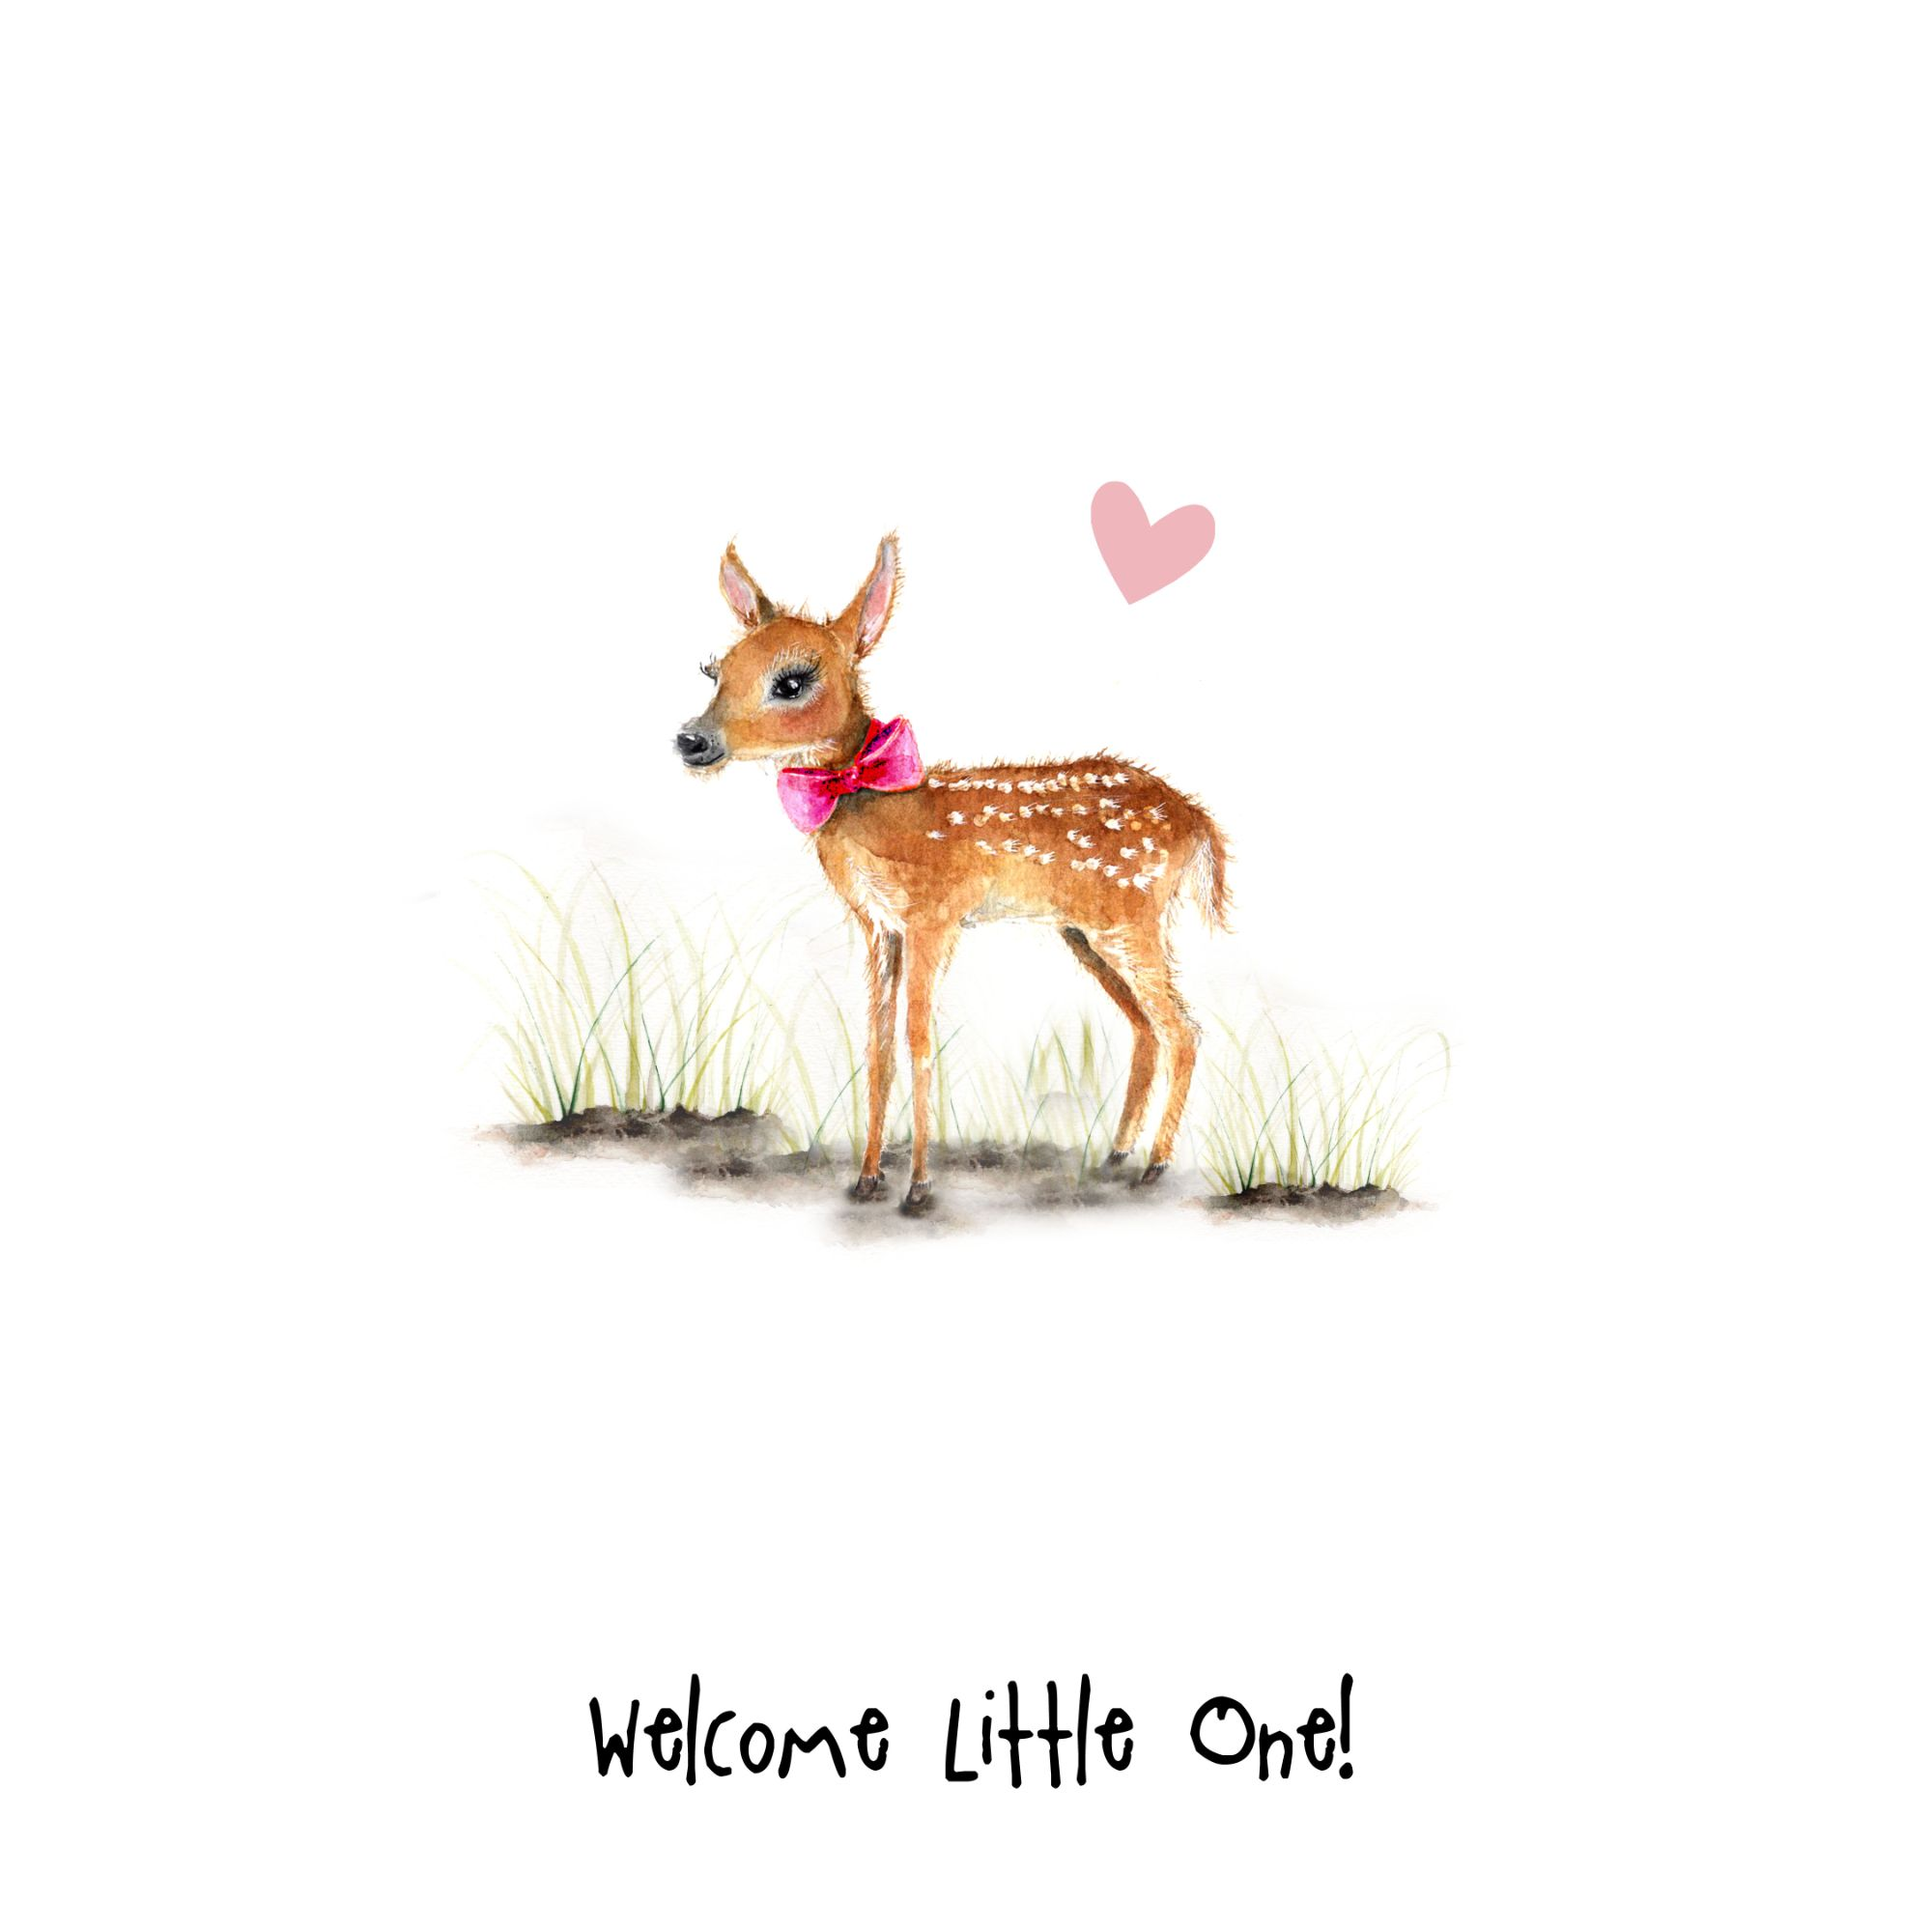 Welcome little one girl 150 by 150 card.jpg